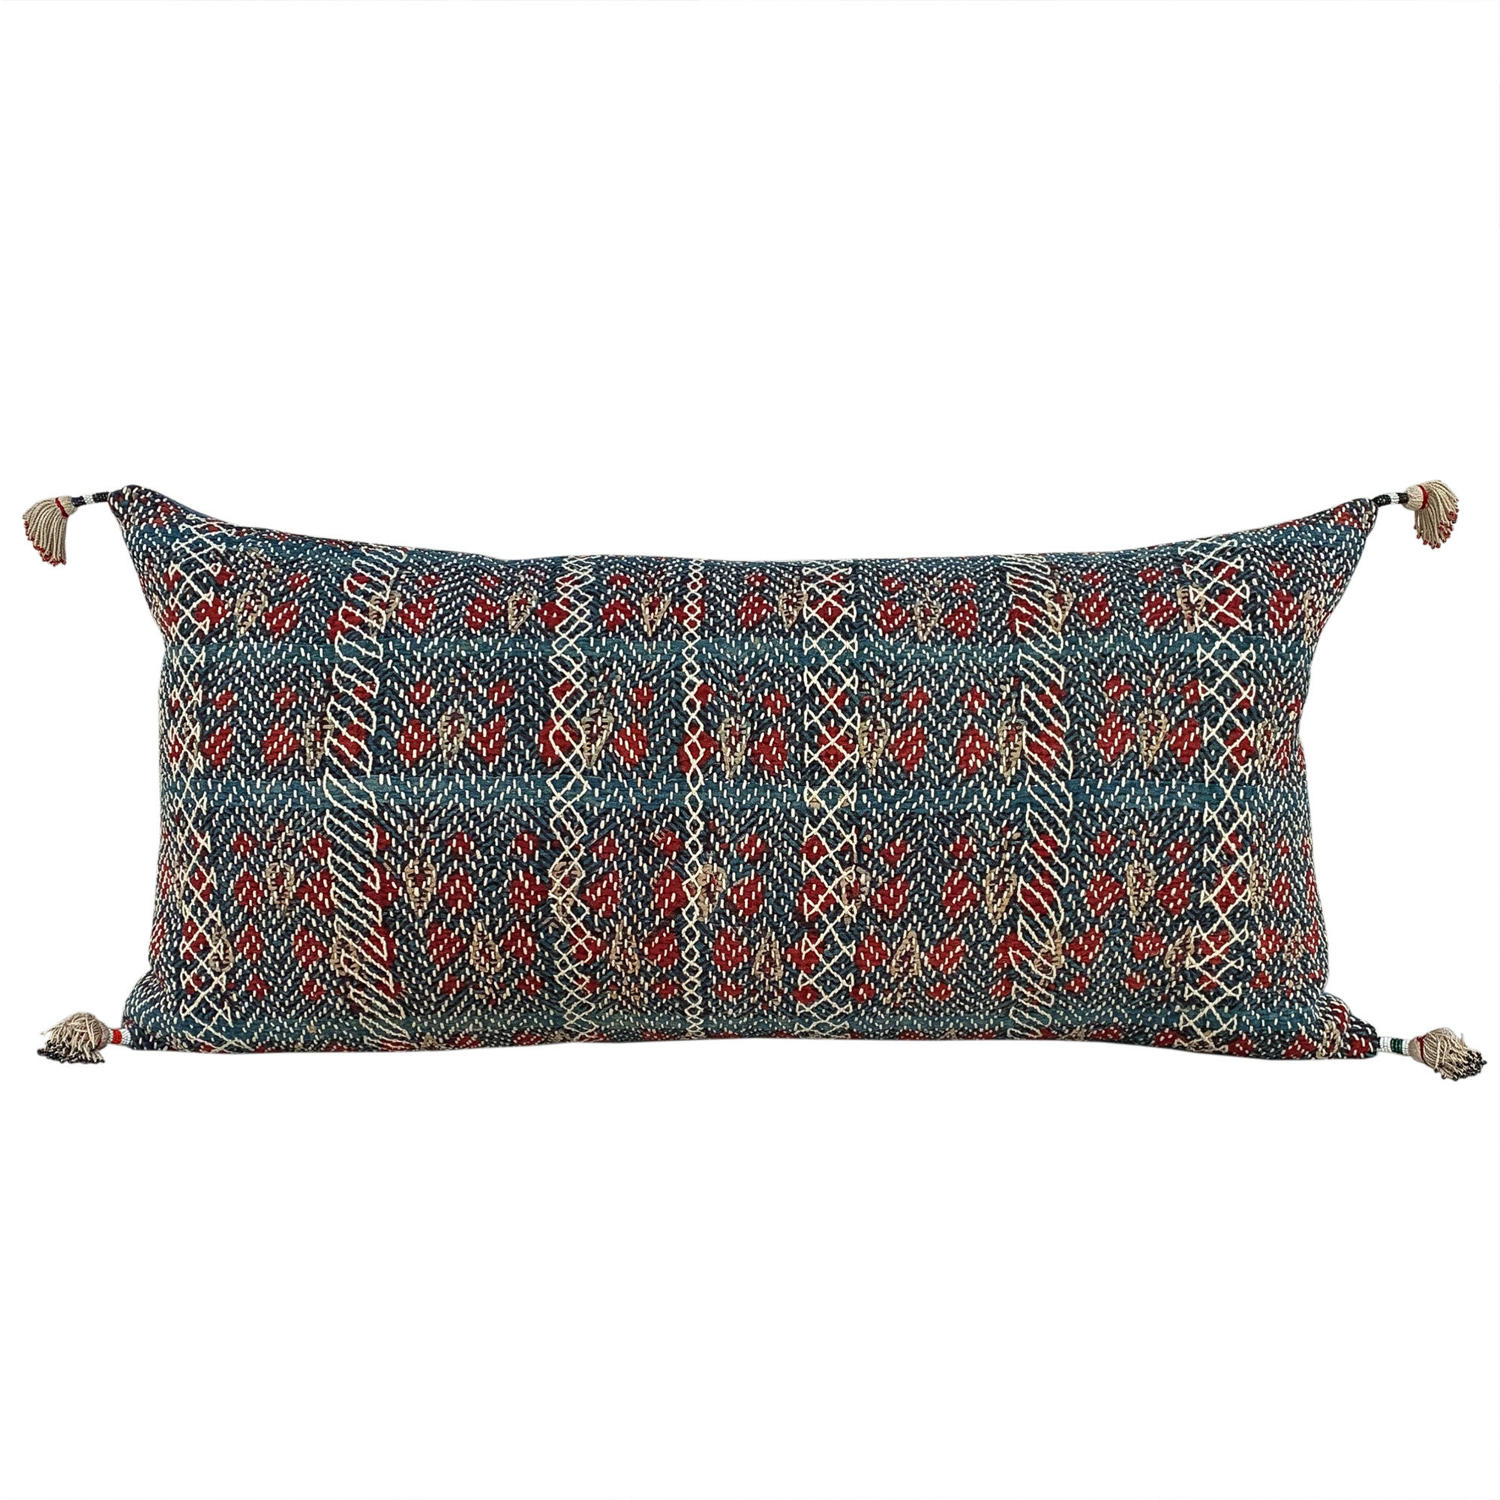 Banjara cushion with Baluci tassels